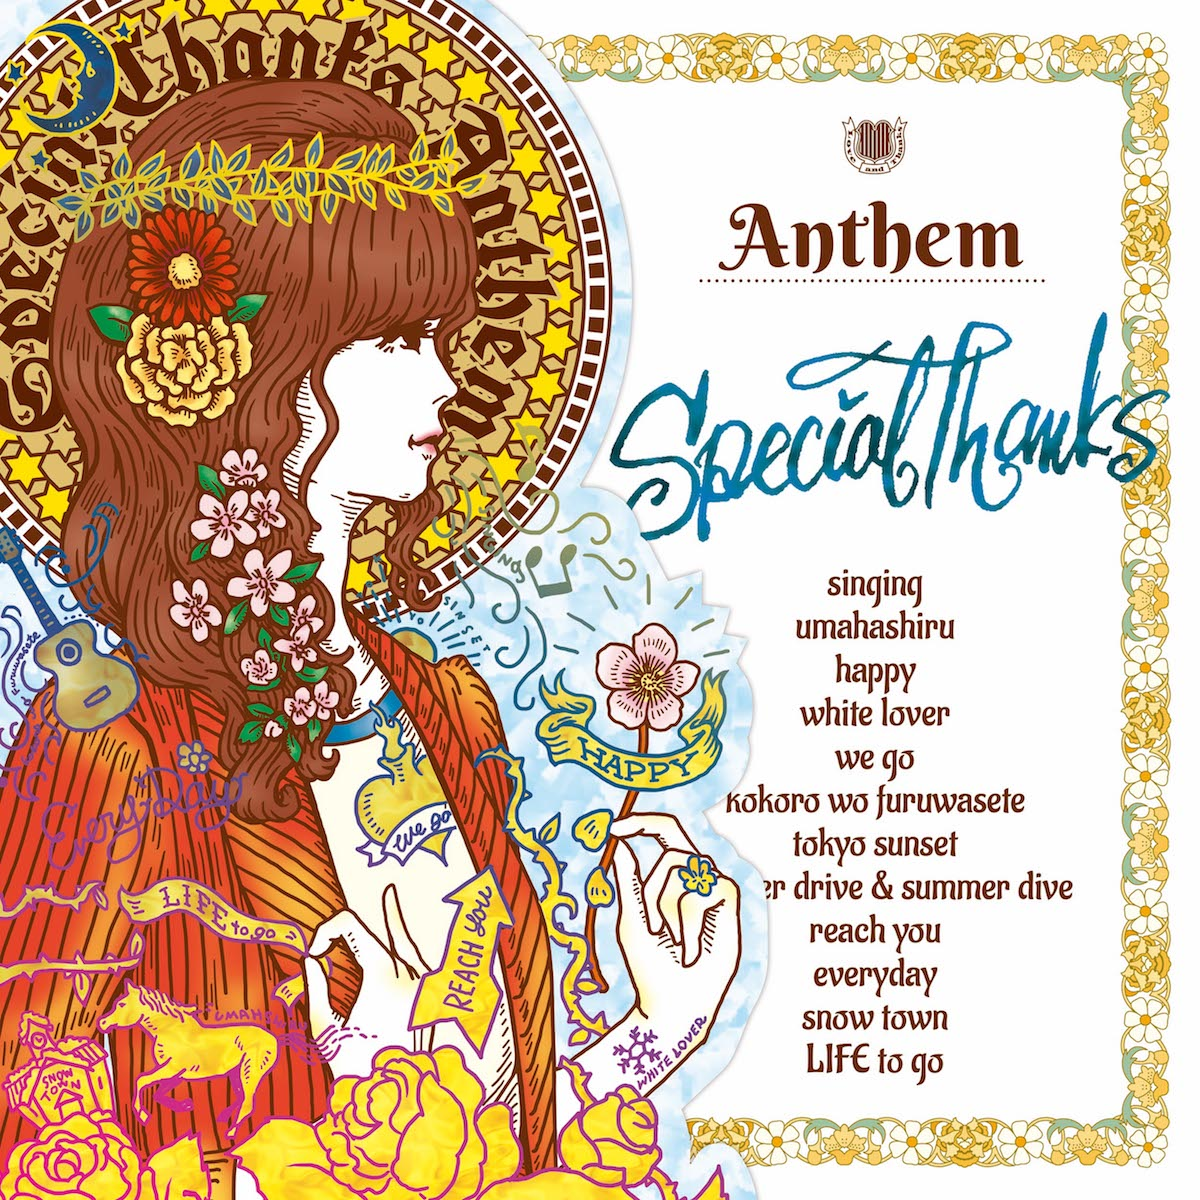 JRock247-SpecialThanks-Anthem-album-1